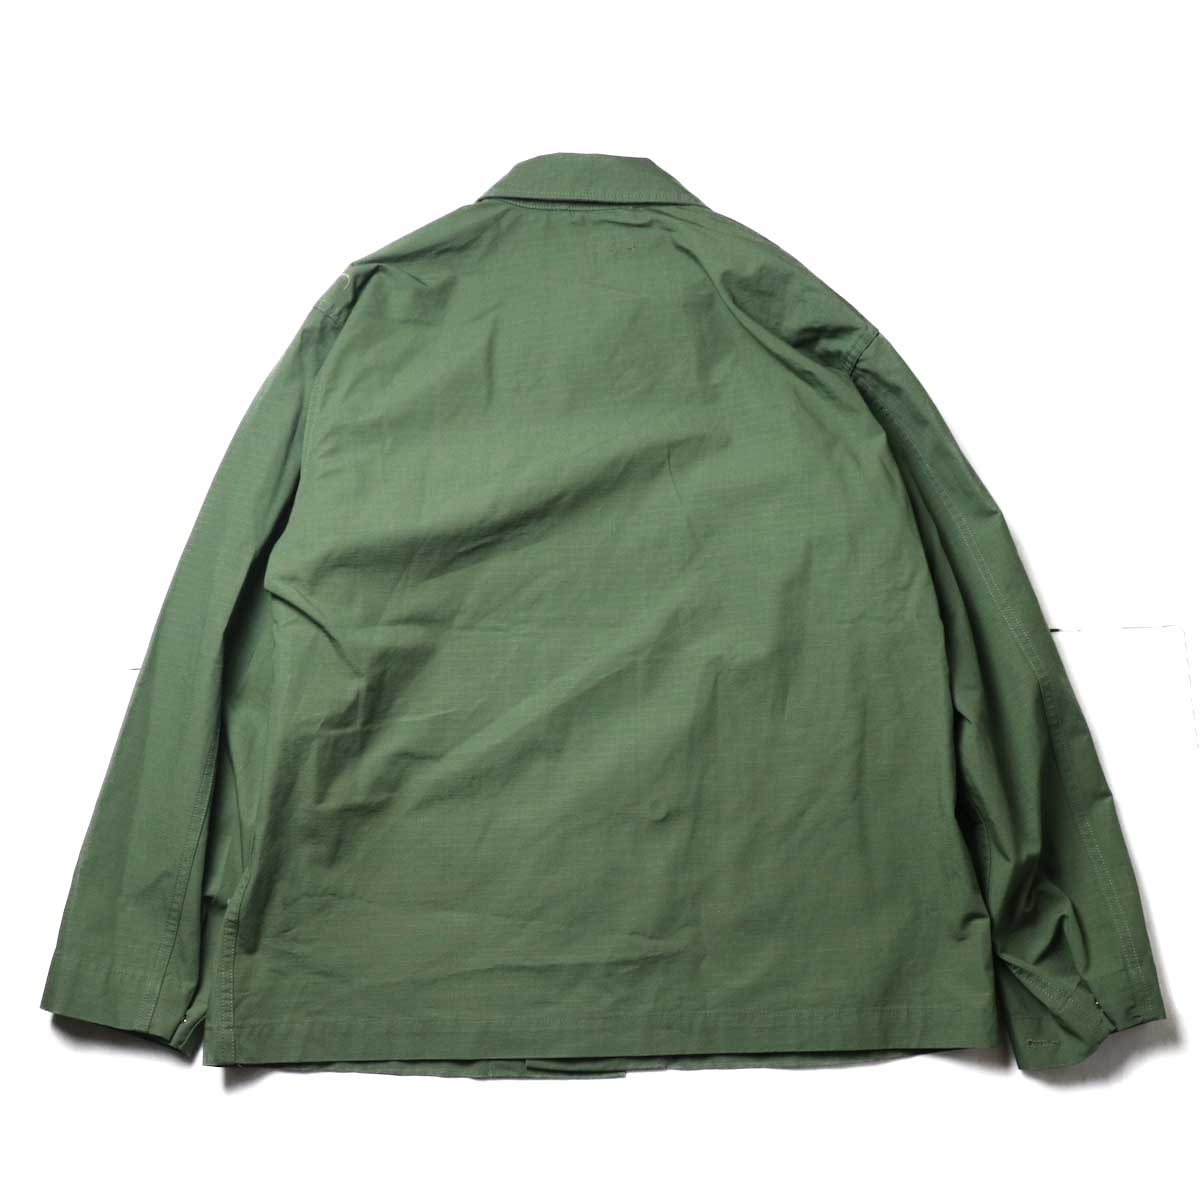 Engineered Garments / M43/2 Shirt Jacket -Cotton Ripstop (Olive)背面